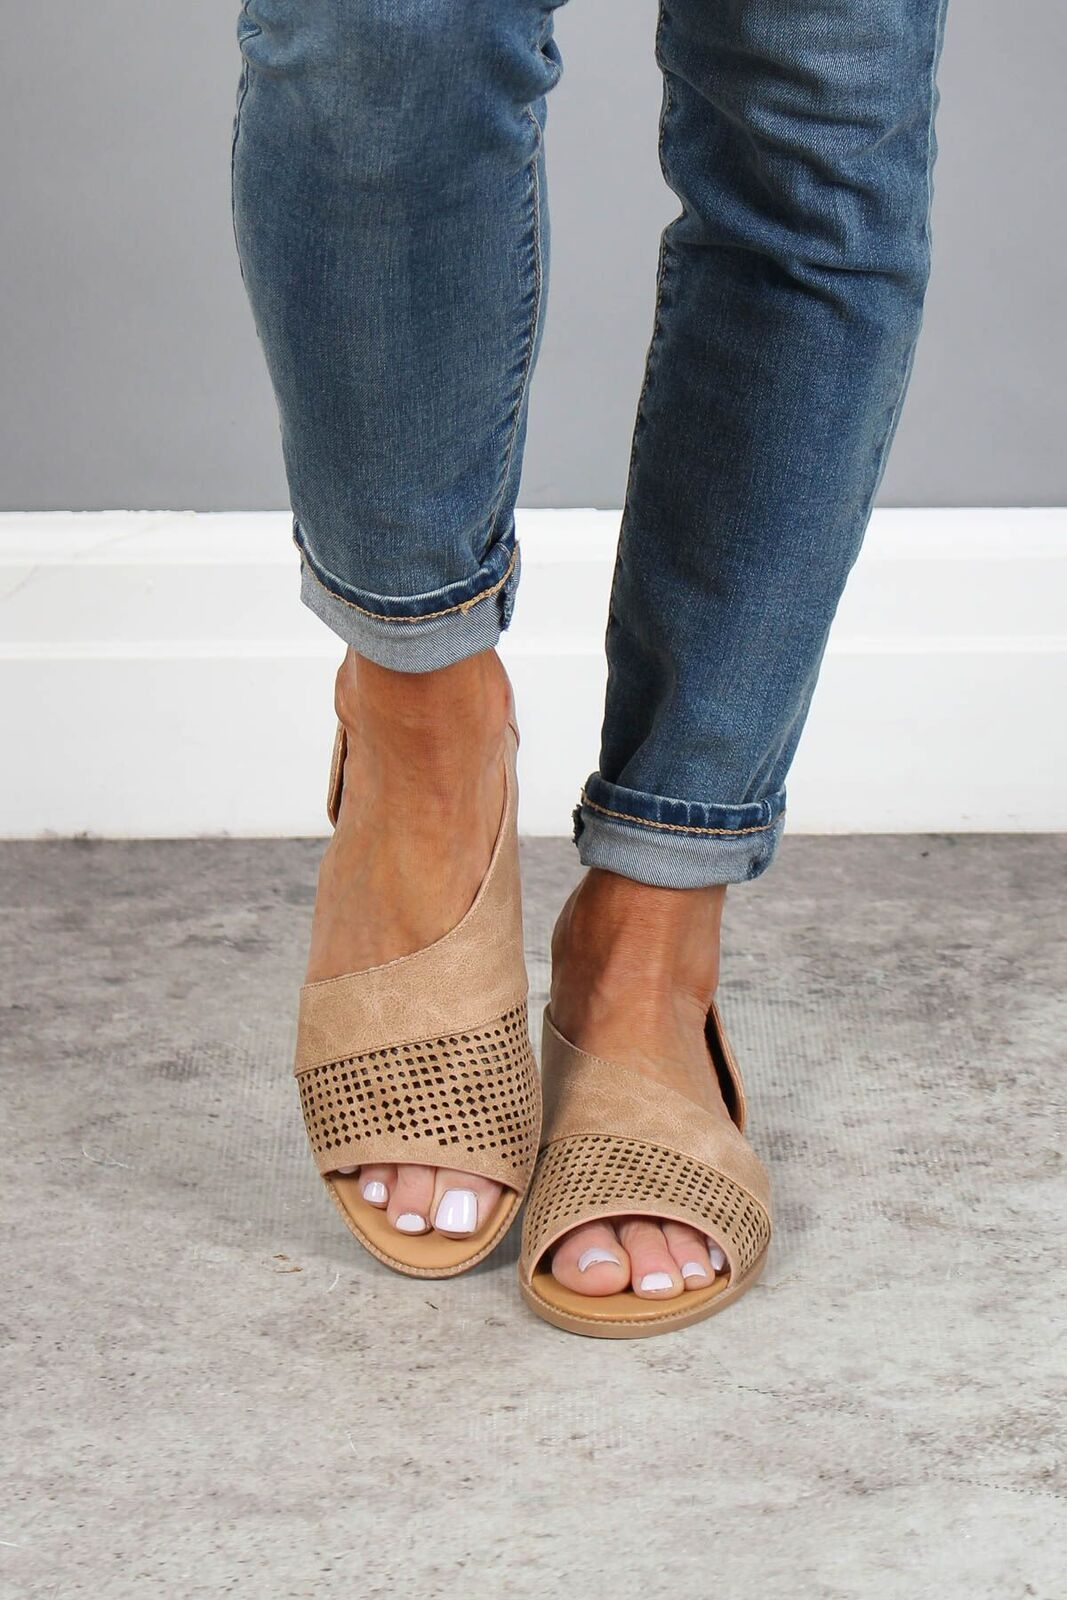 6 Details about  /Lot Of 10 Women's Summer Shoes: Sizes 5 and one 7 5.5